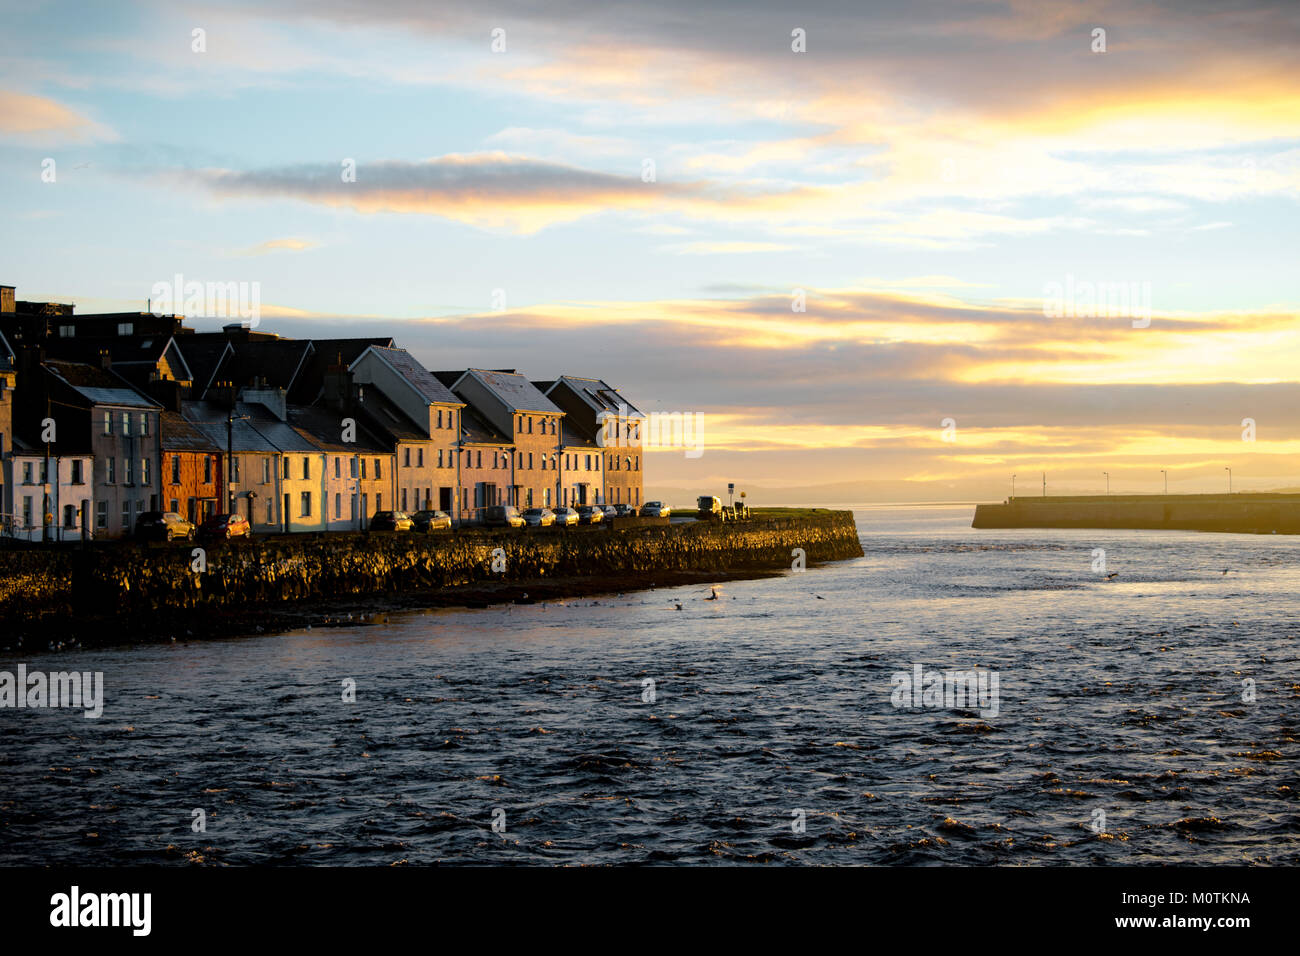 First morning light in Galway harbour - Stock Image